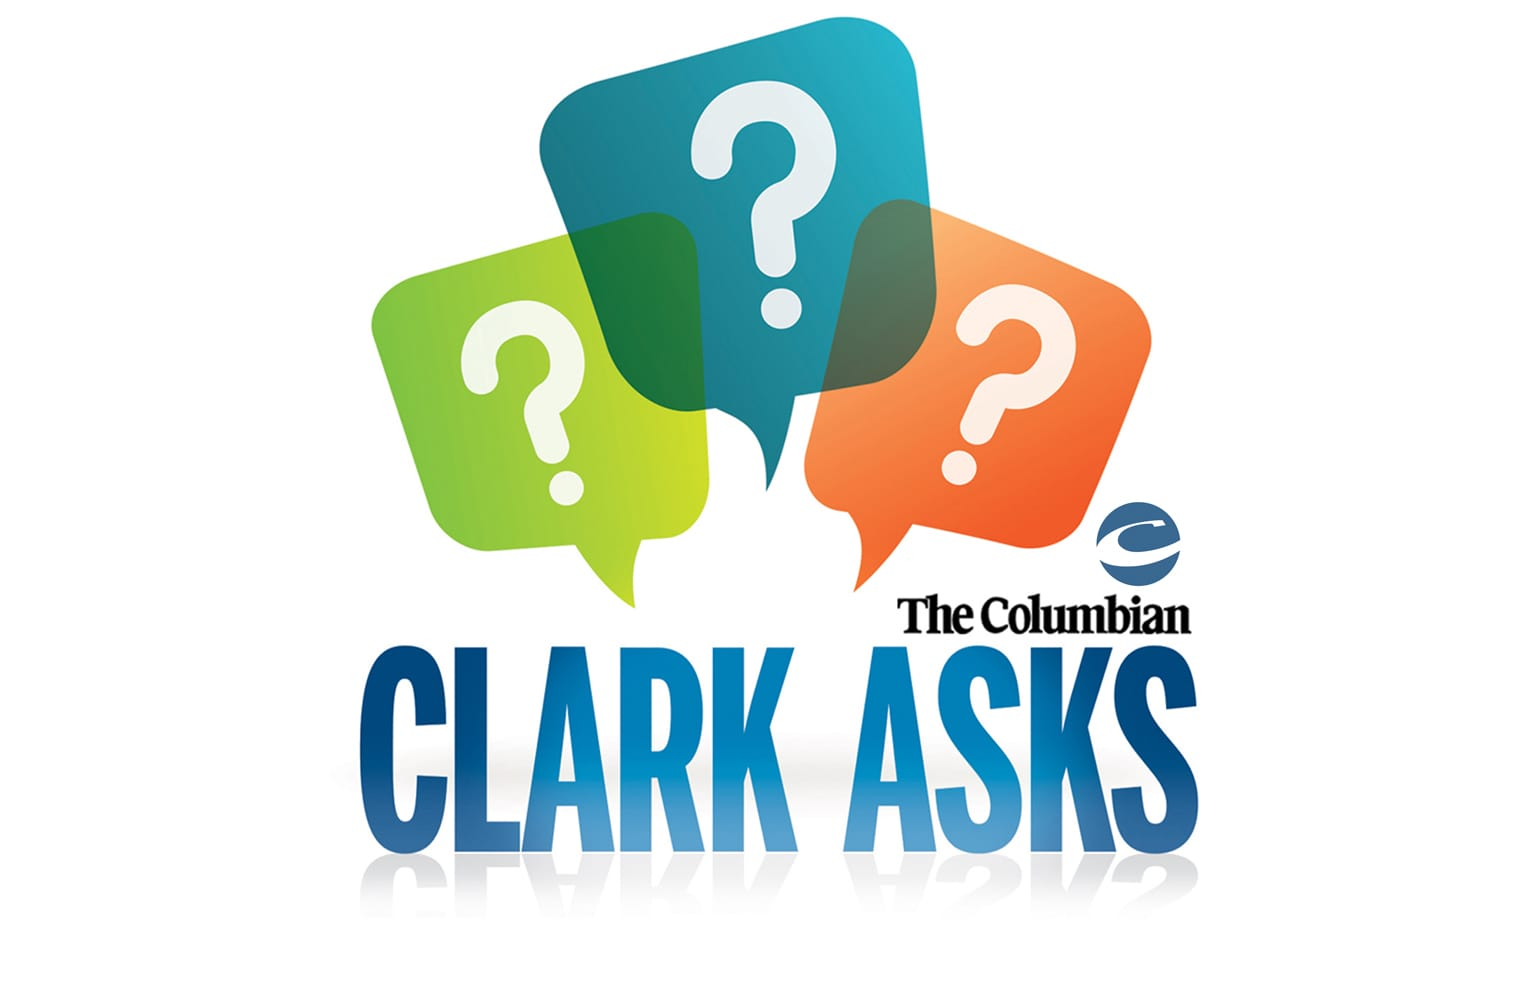 Clark Asks Abandoned Yacht Big Curiosity For Readers The Columbian